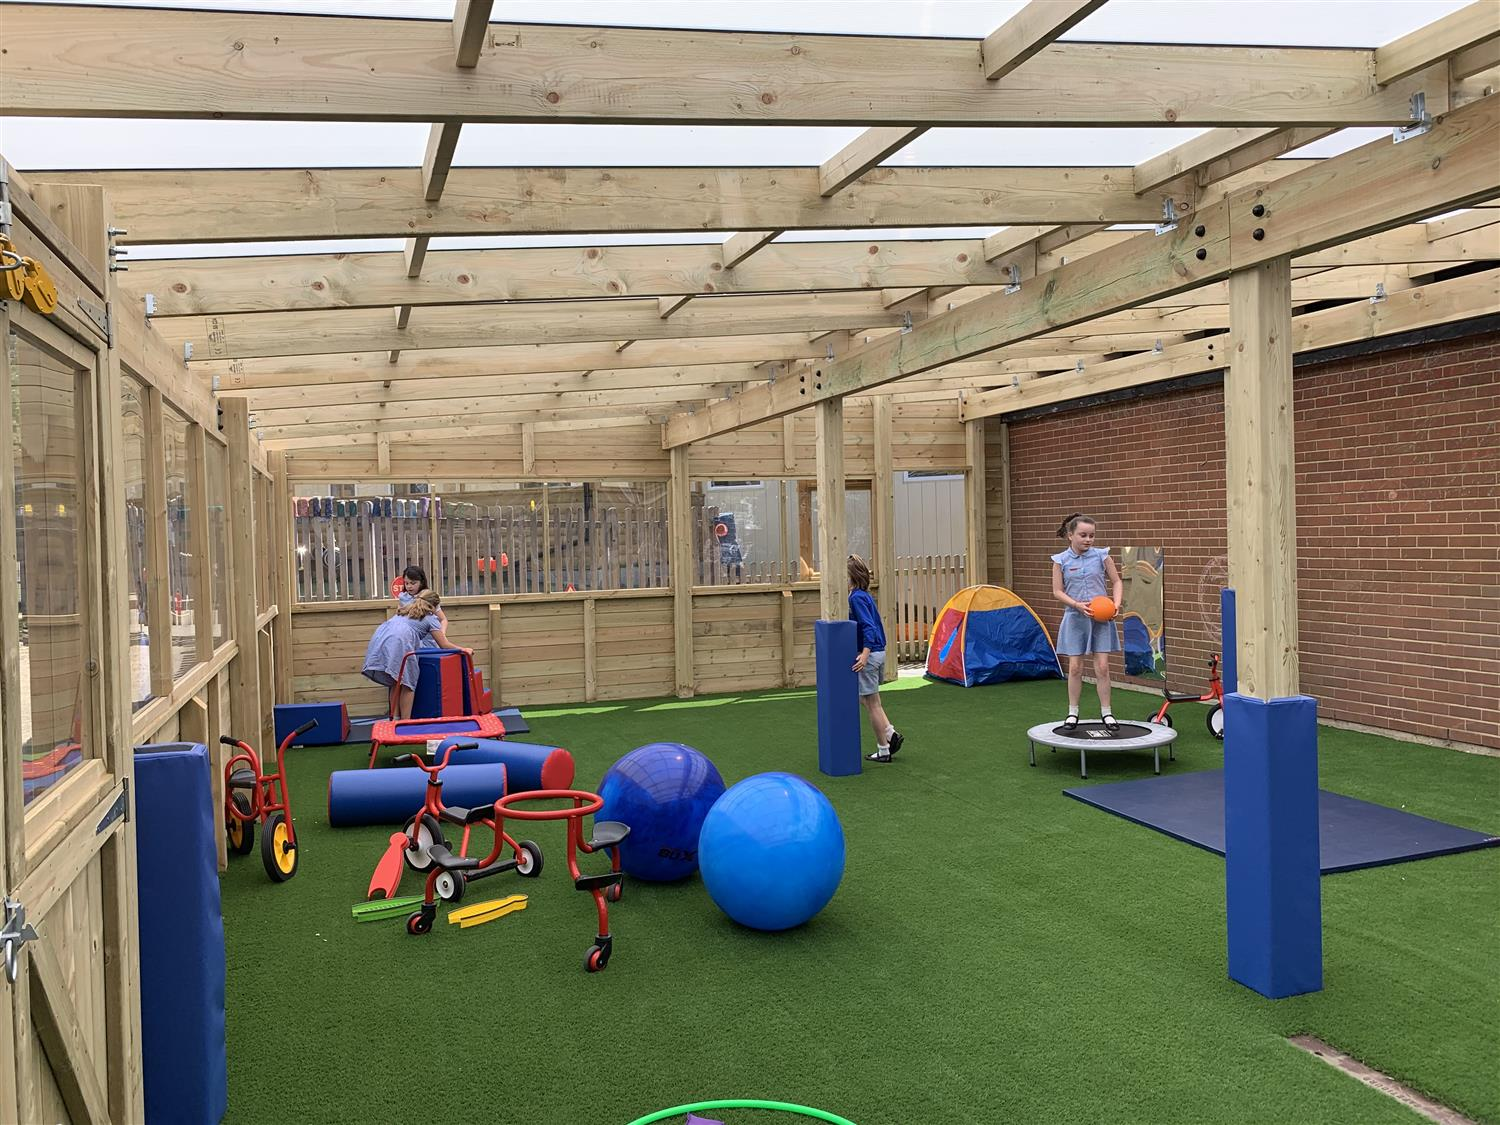 Children playing on artificial grass underneath a timber canopy